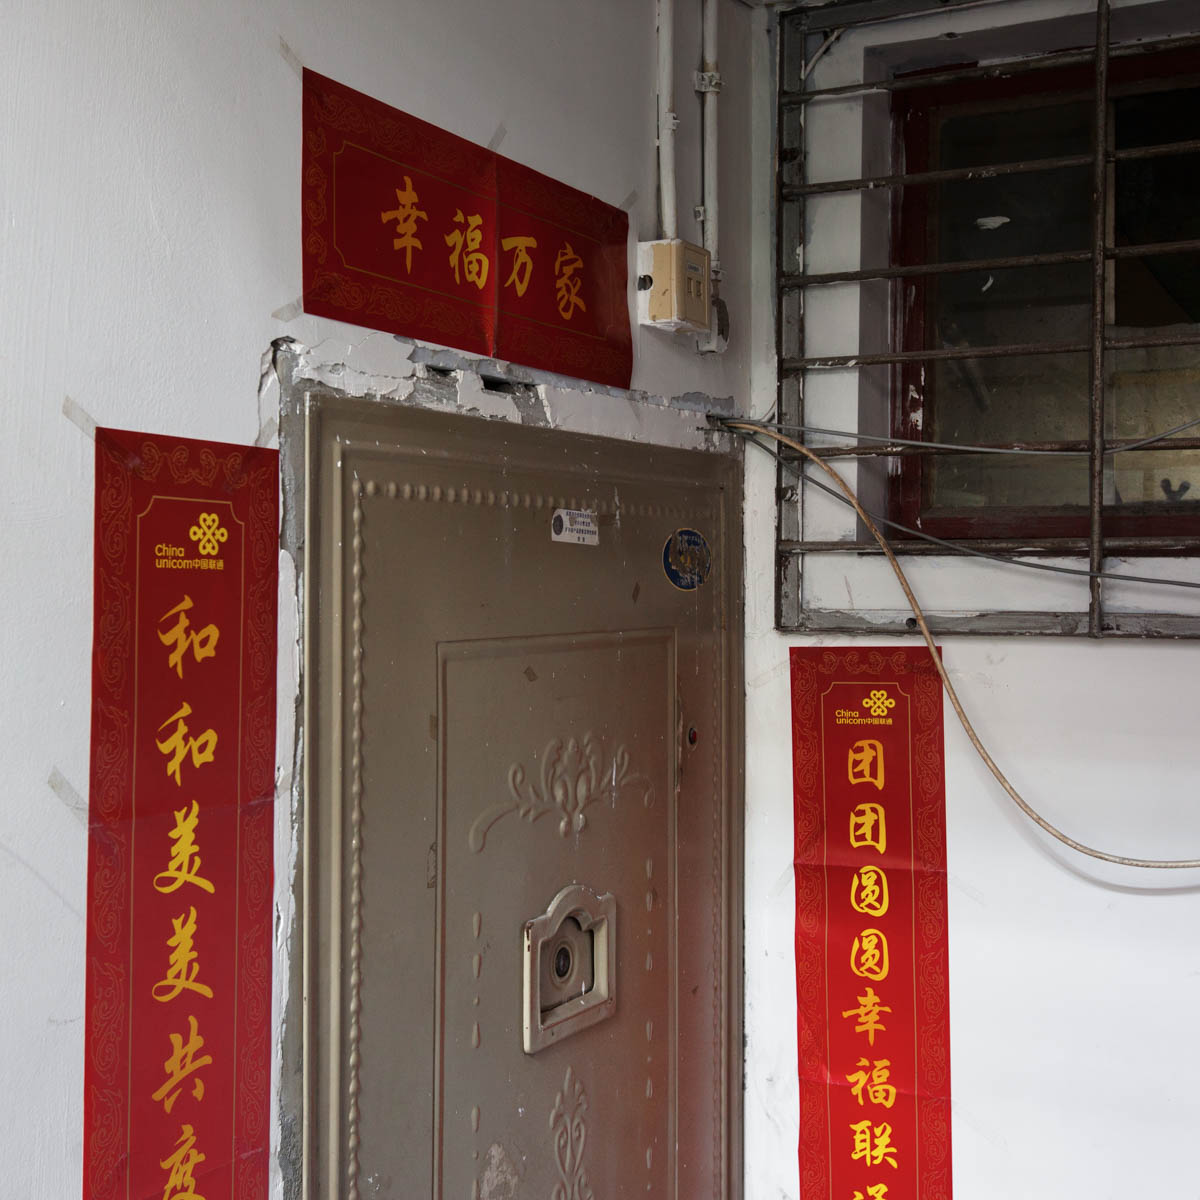 "He Xiao Bing's interior - Bing wanted to show us his dormitory but the door was locked. He doesn't have his own key. Chengdu, Sichuan Province, China, April 2012. - Copyright © © S. Borcard - N. Metraux - Chengdu - Sichuan Province - China - <A href=""https://maps.google.com/?ll=30.662428,104.066055&z=16"" target=""_blank"">(Map He Xiao Bing's interior)</A>"